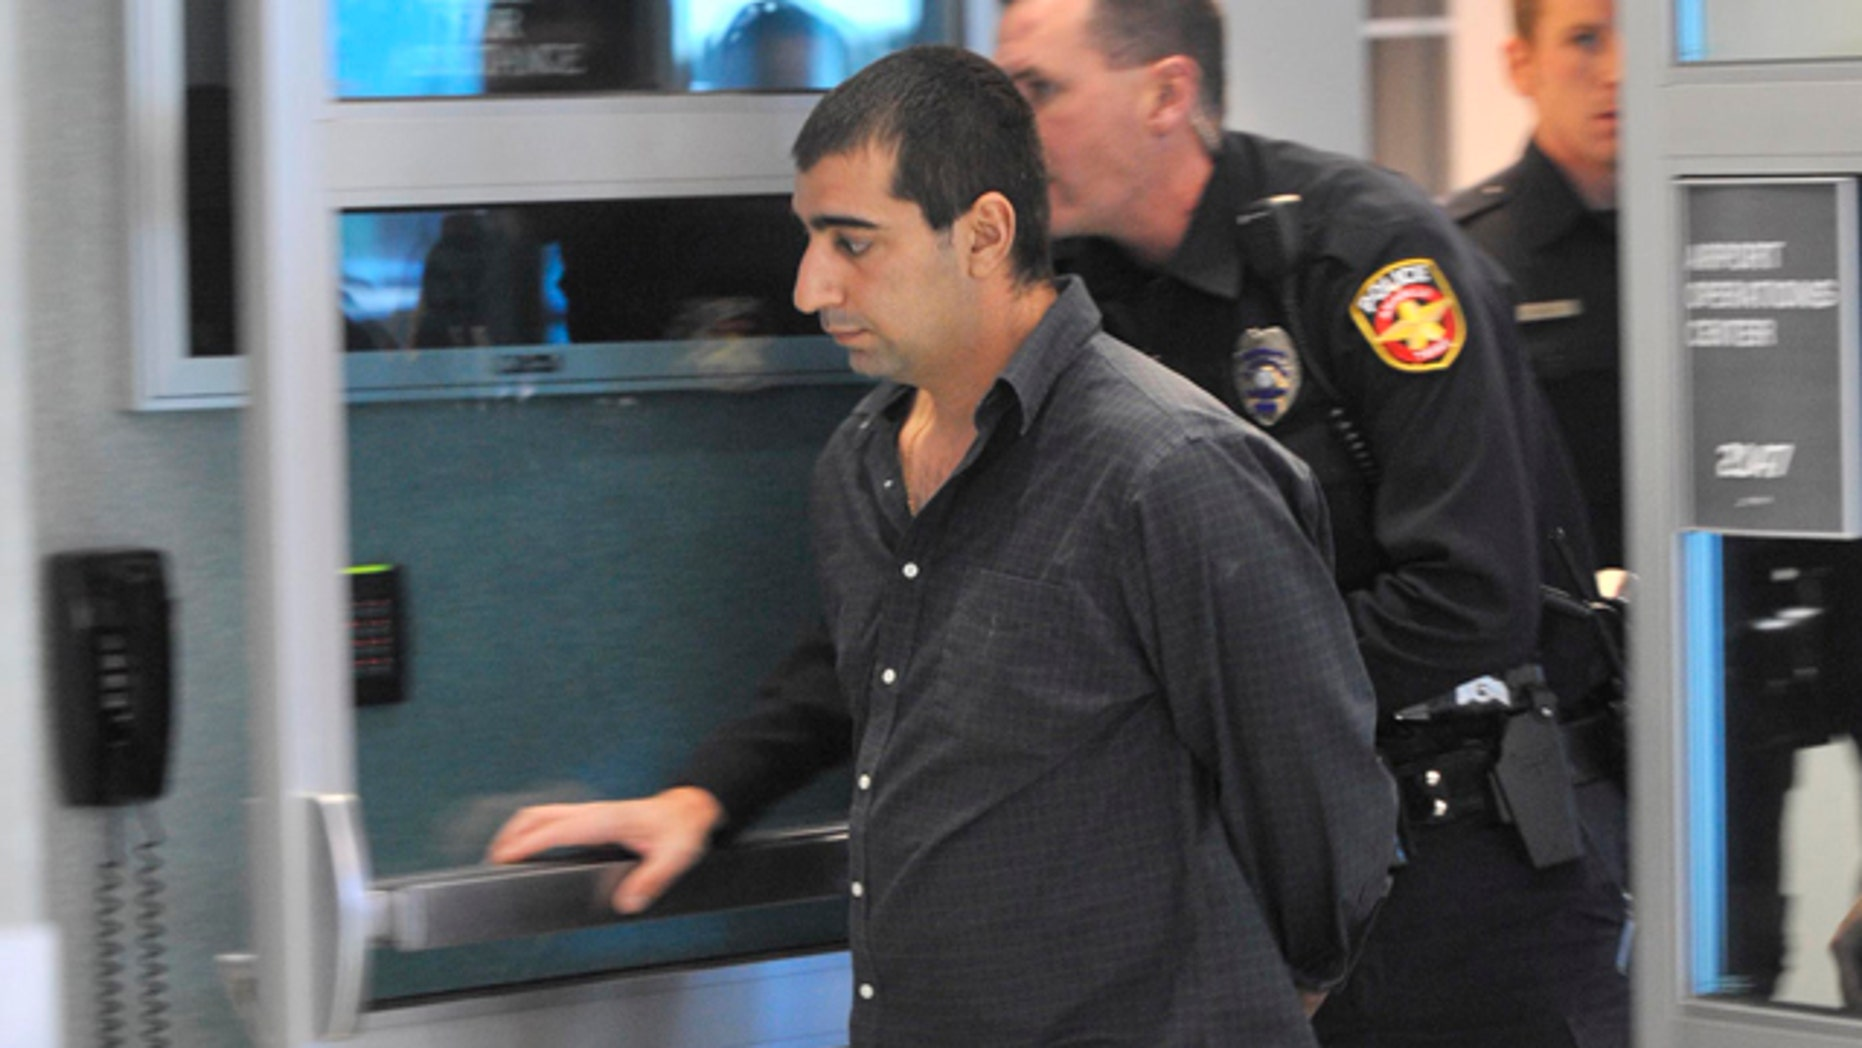 Oct. 28, 2011: Ali Reza Shahsavari, 29, of Indialantic, Fla., is escorted by Amarillo Police and FBI officers after causing a disturbance on a Southwest Airlines flight from Los Angeles to Kansas City.